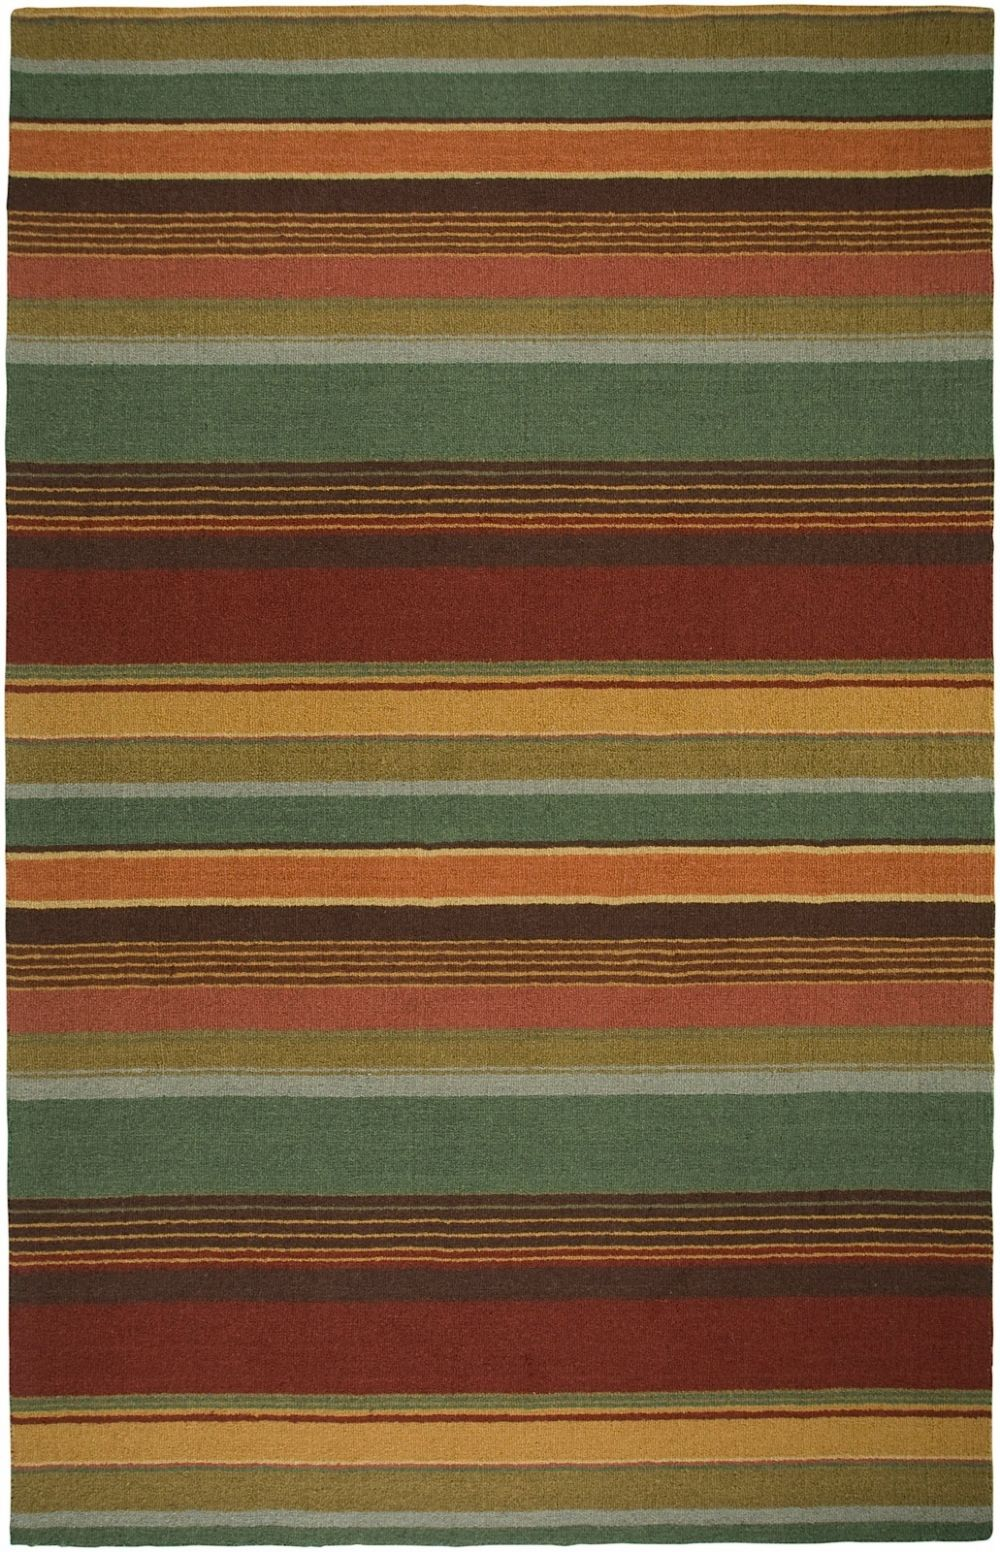 rizzy rugs waverly solid/striped area rug collection